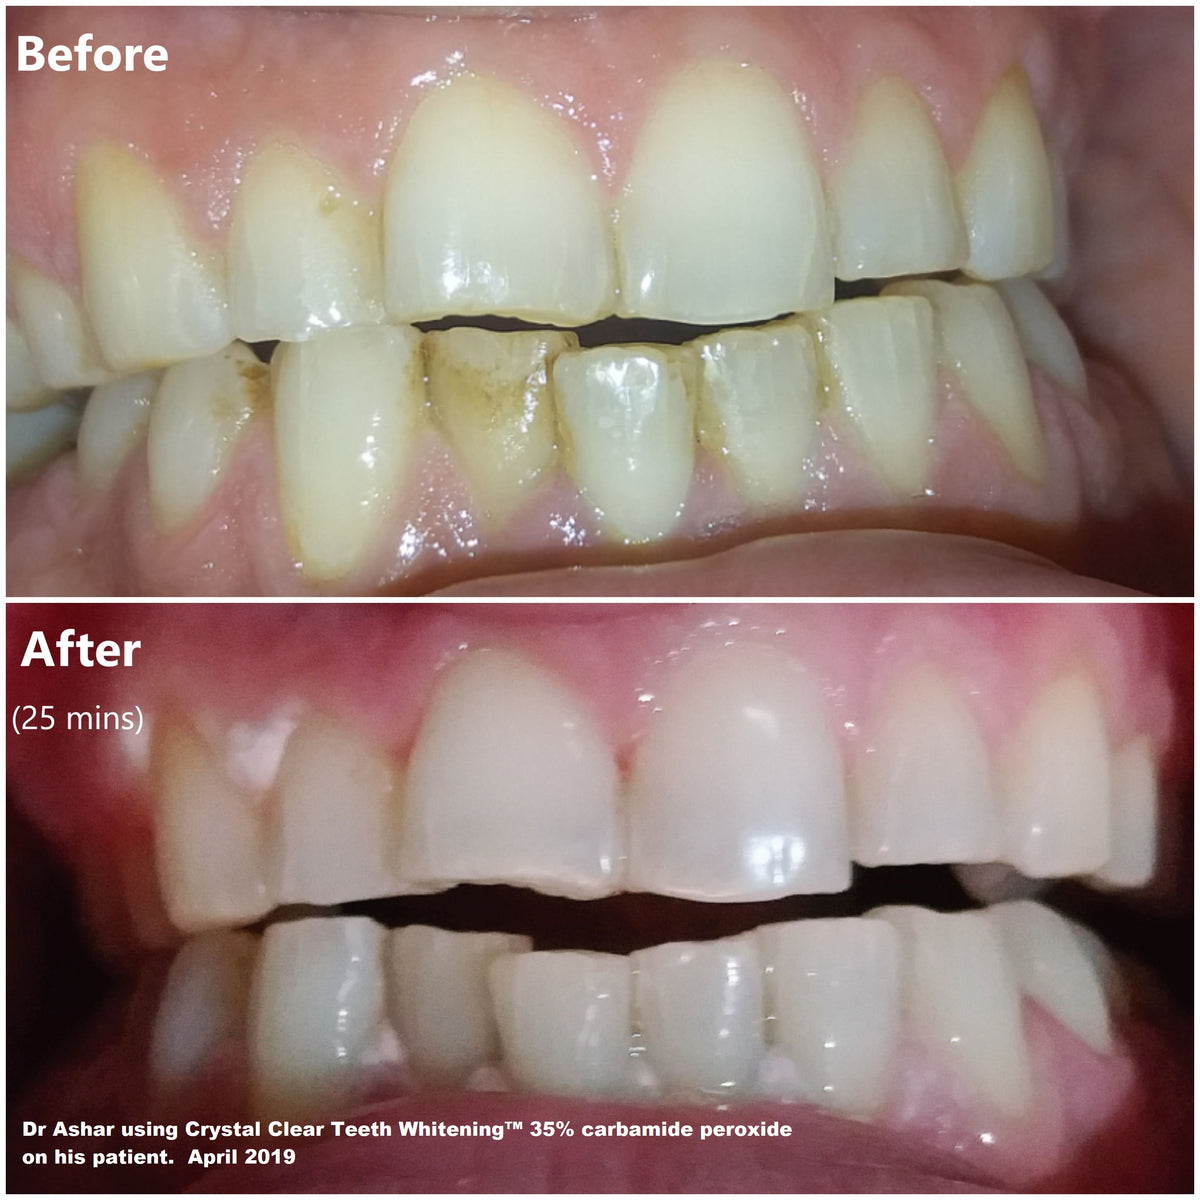 Crystal Clear Teeth Whitening Kit whitening results